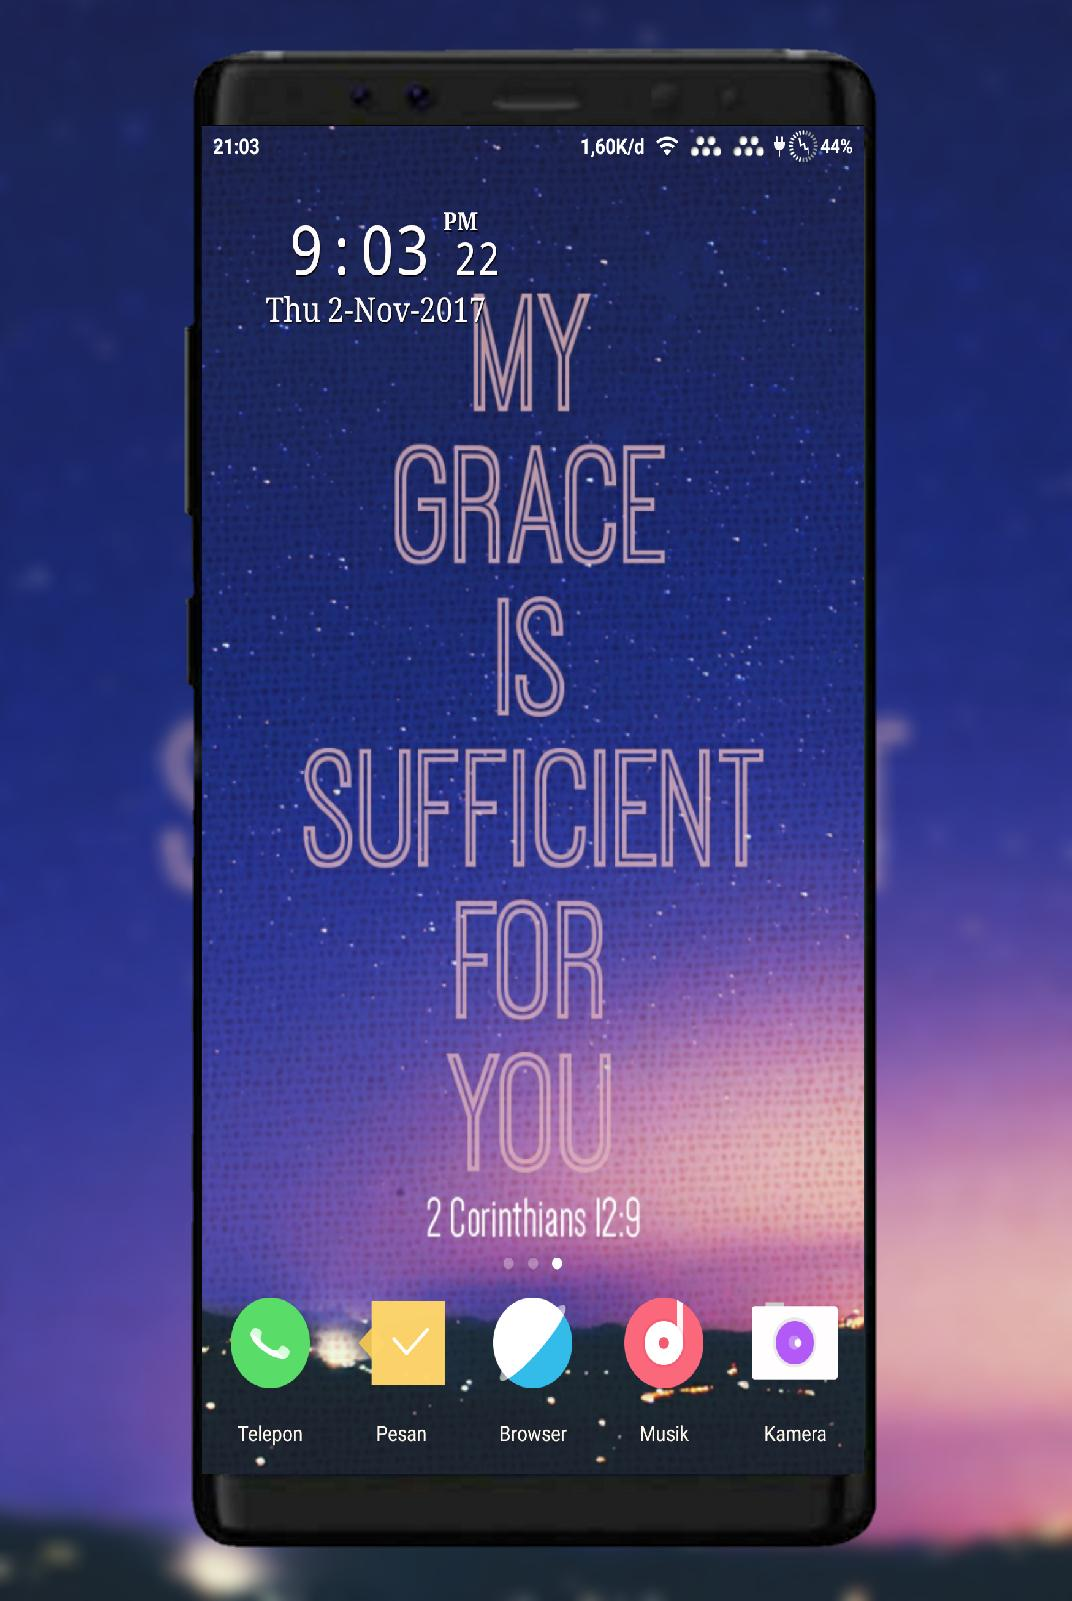 Christian Wallpaper for Android   APK Download 1072x1601